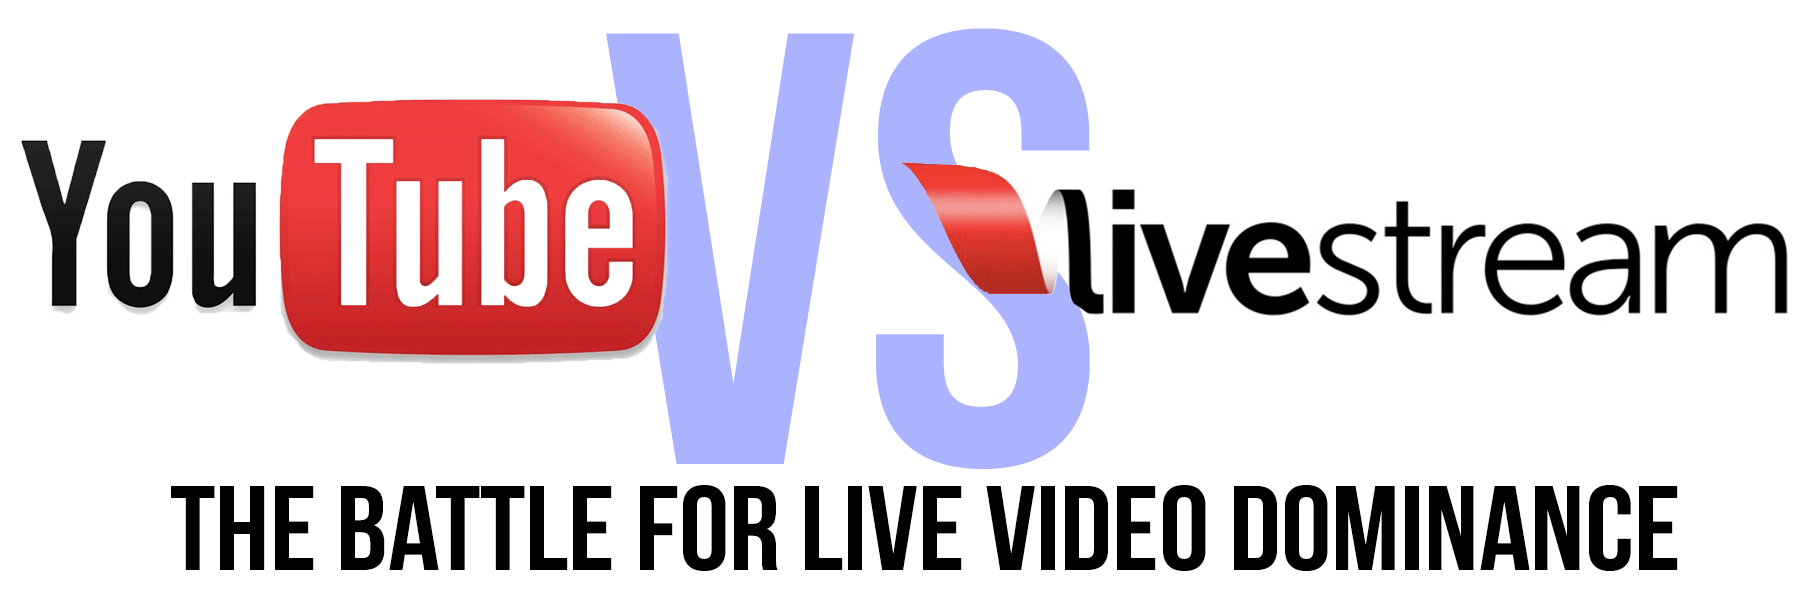 A Comparison of YouTube and Livestream's Live Video Services